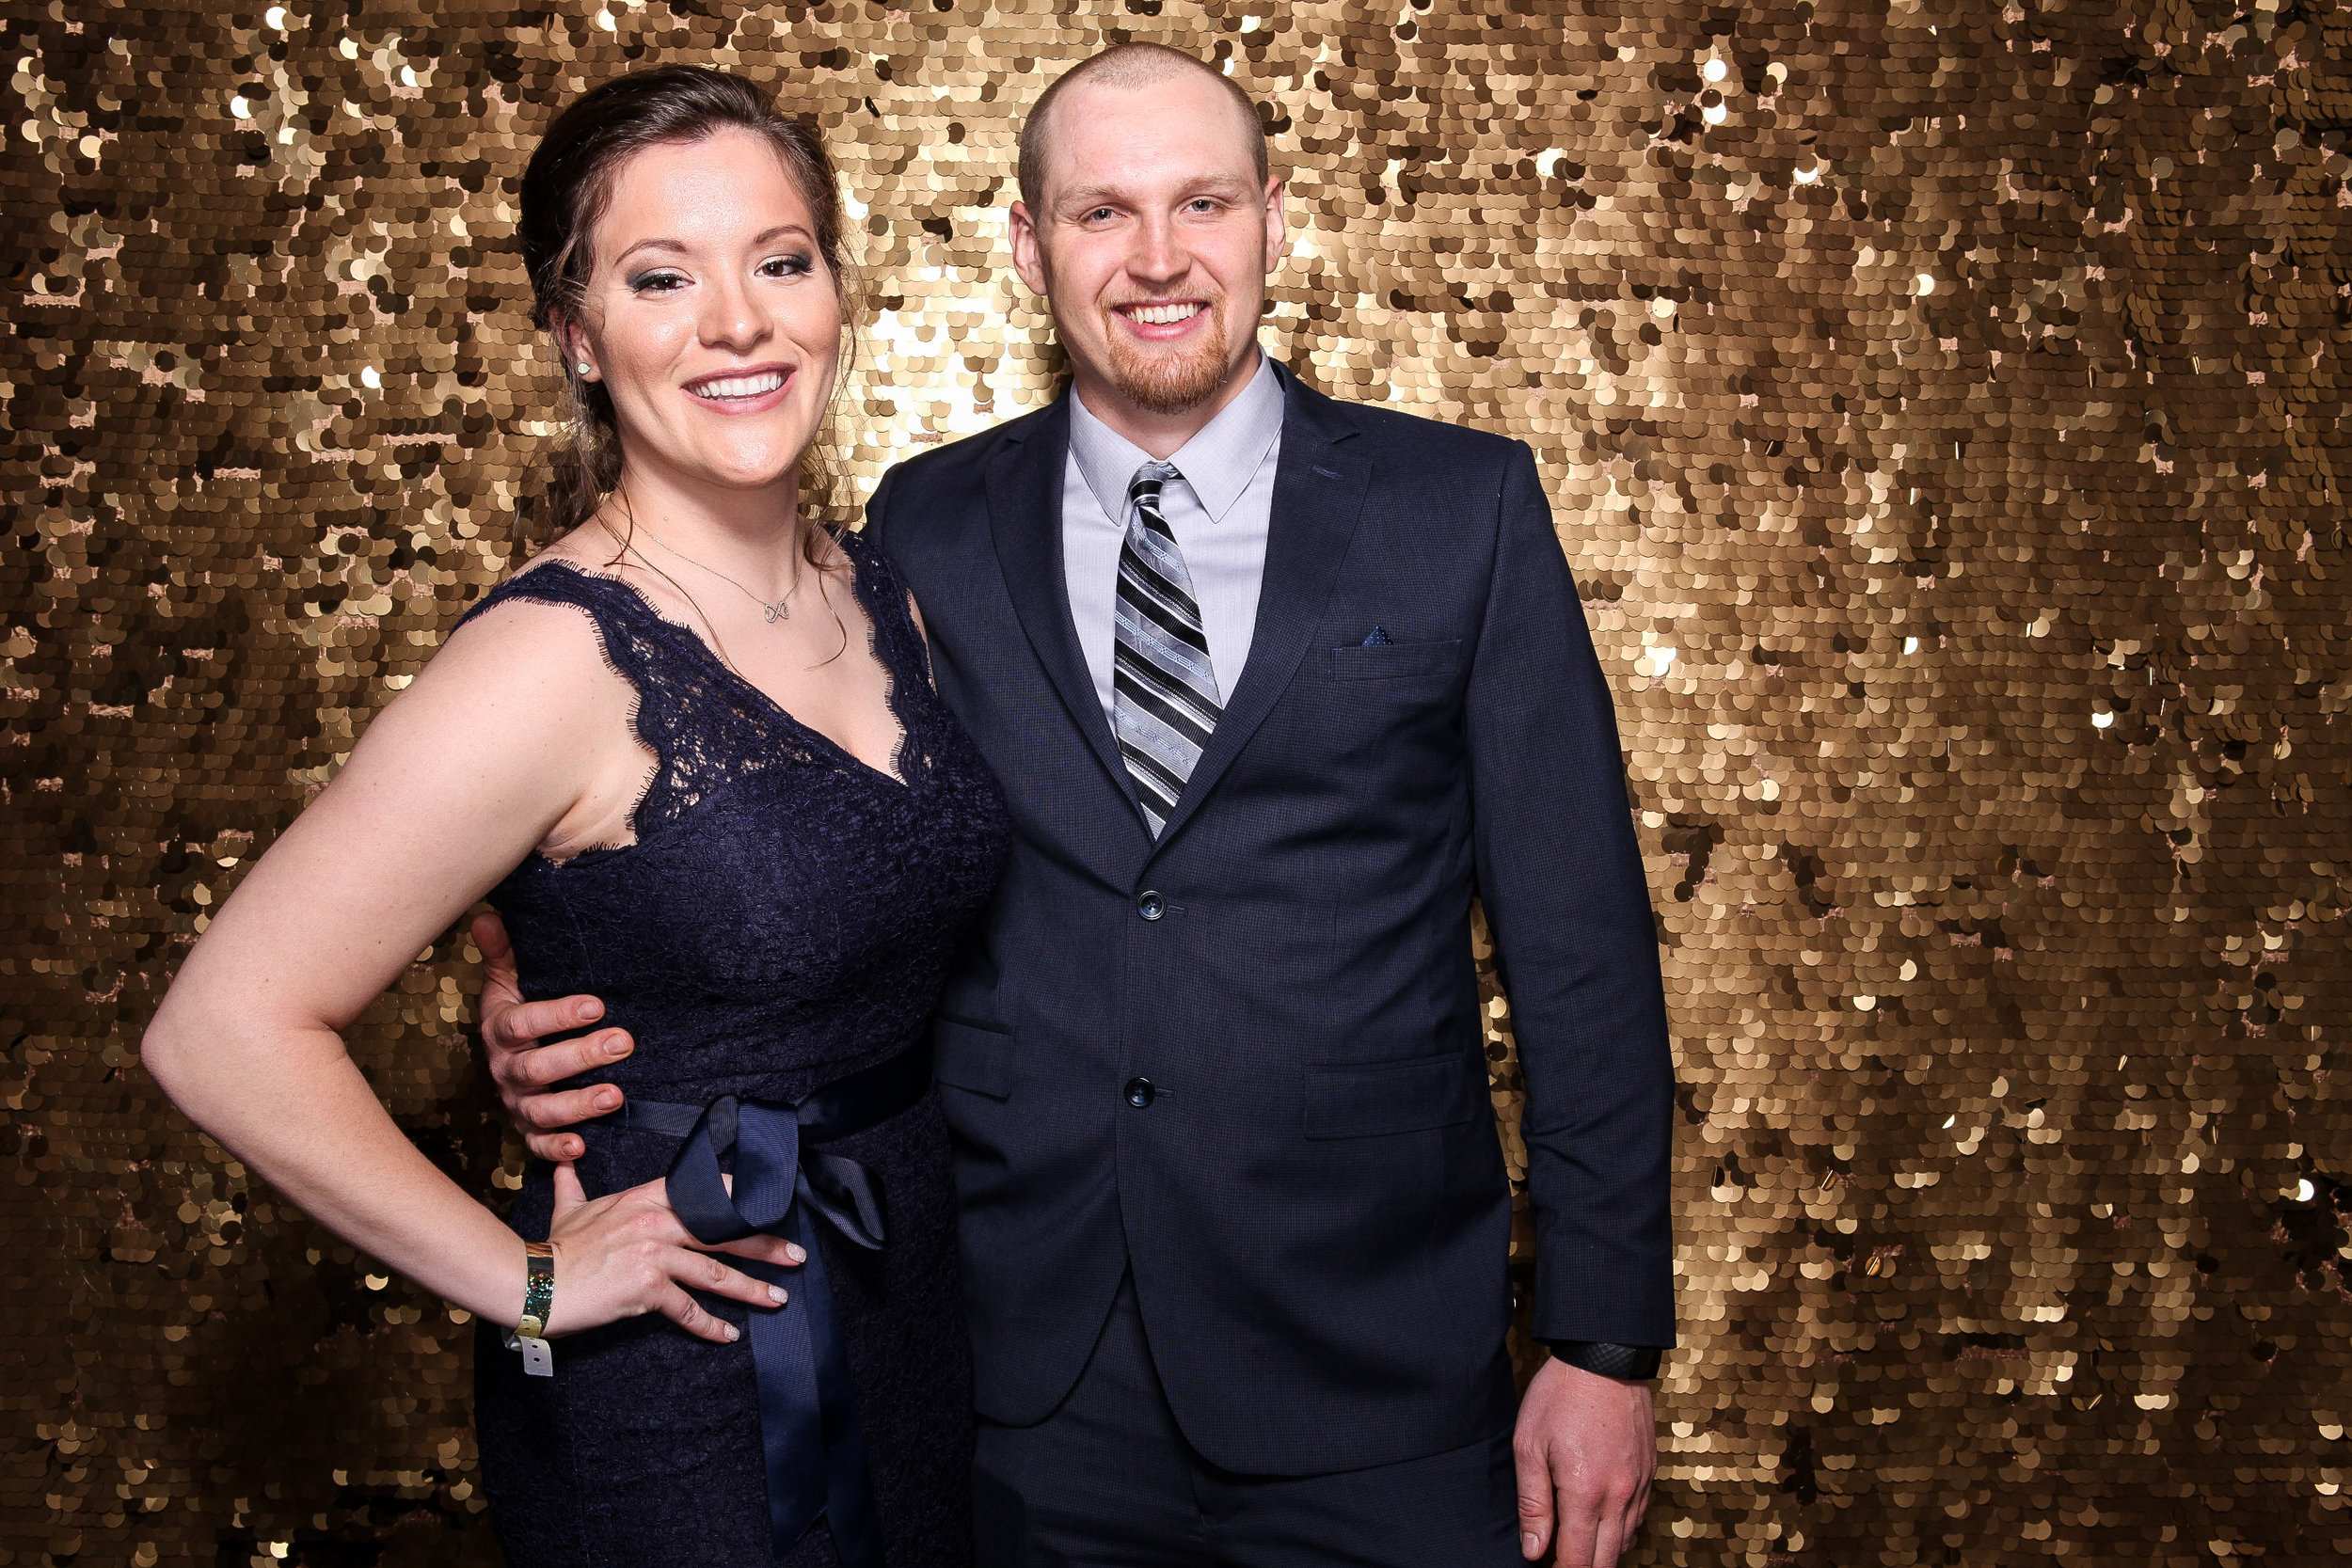 20190503_Adelphi_Senior_Formal-155.jpg